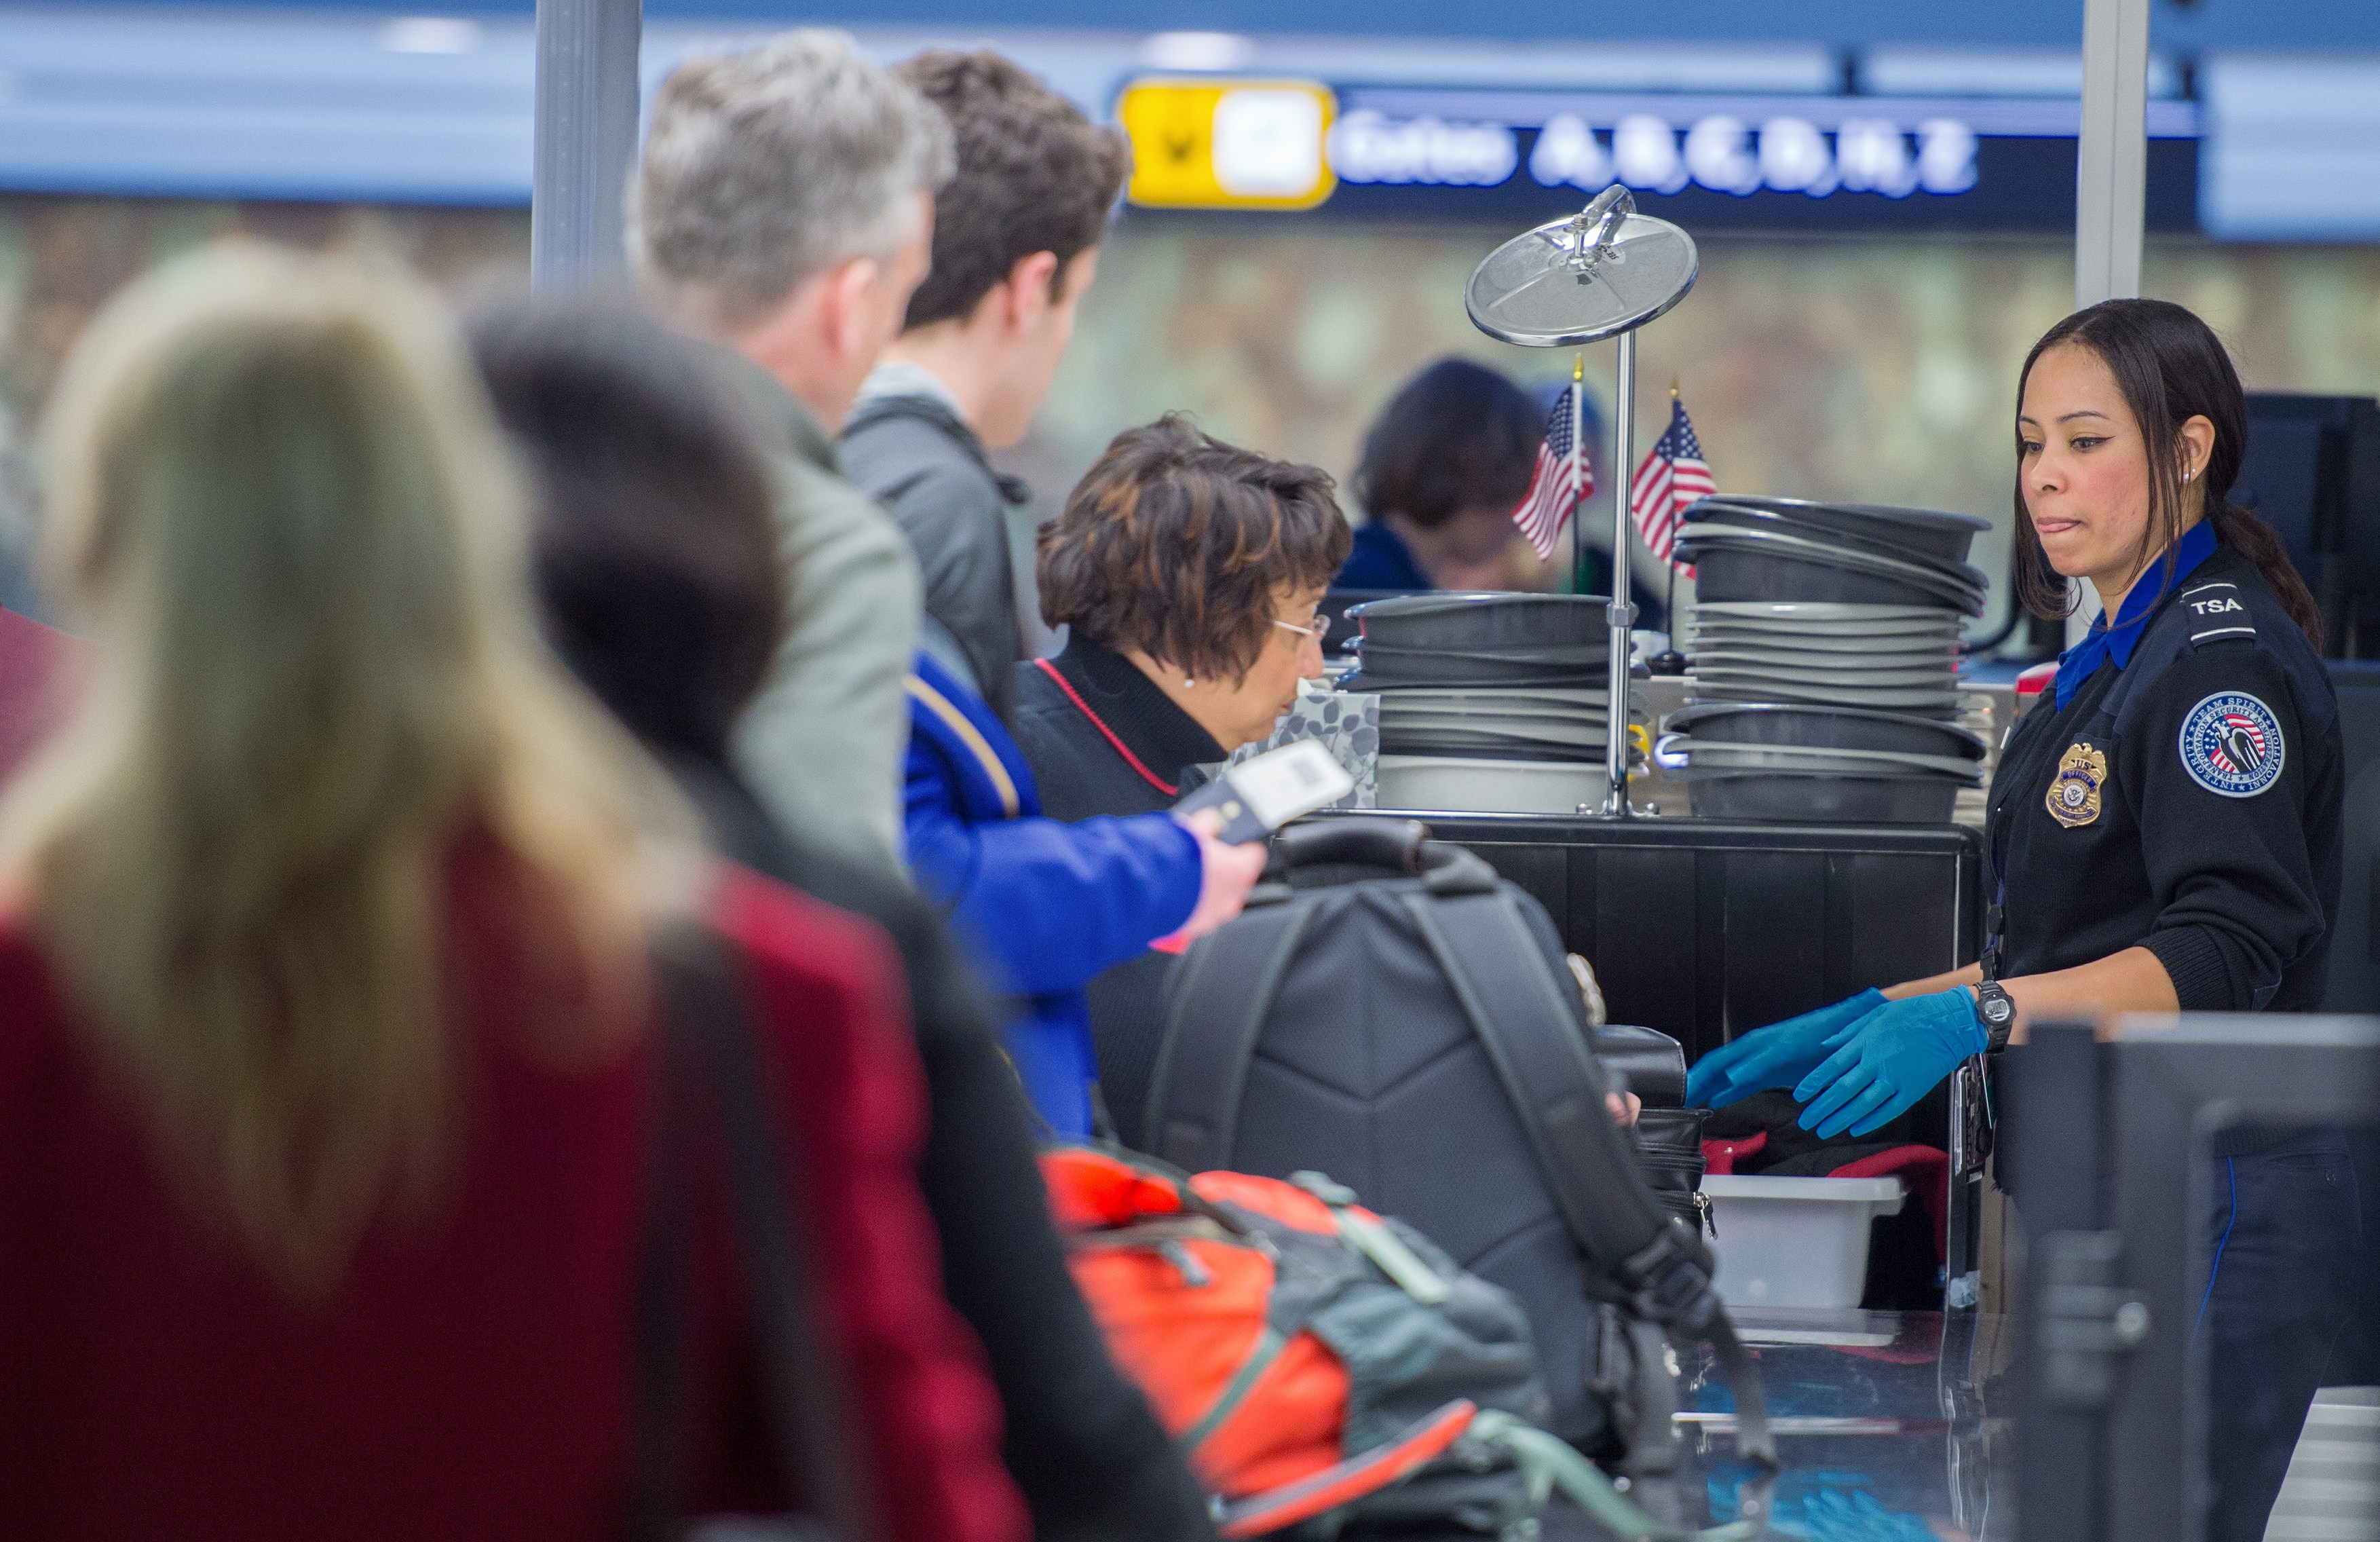 Airline travelers are processed at a Transportation Safety Agency security checkpoint at the Dulles International Airport (IAD) in Sterling, Va., on Dec. 23, 2014 (PAUL J. RICHARDS/AFP/Getty Images)